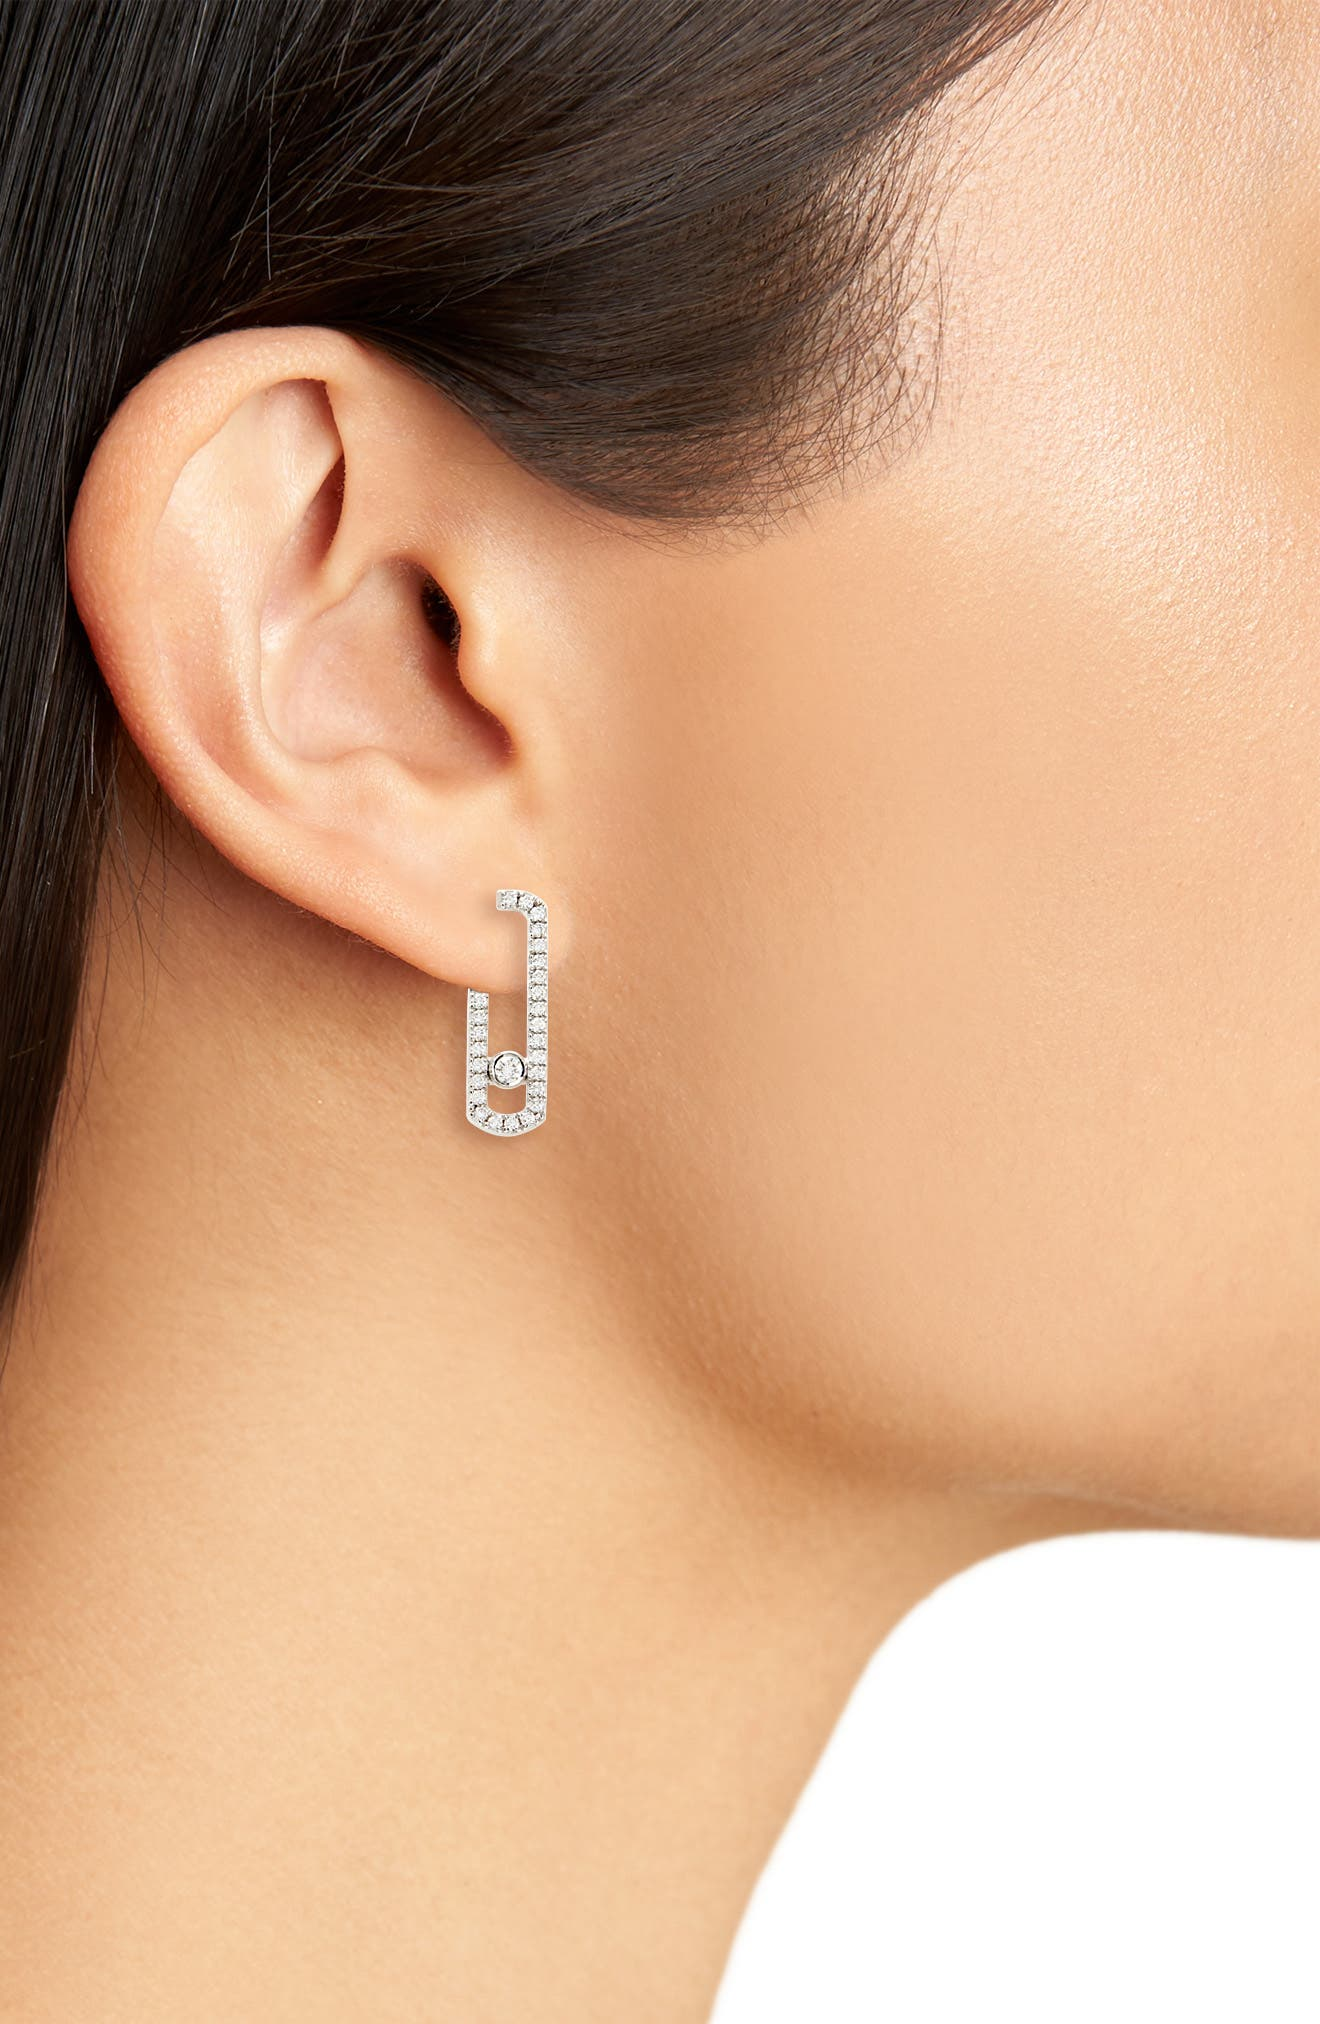 Move Addiction by Gigi Hadid Diamond Pavé Earrings,                             Alternate thumbnail 2, color,